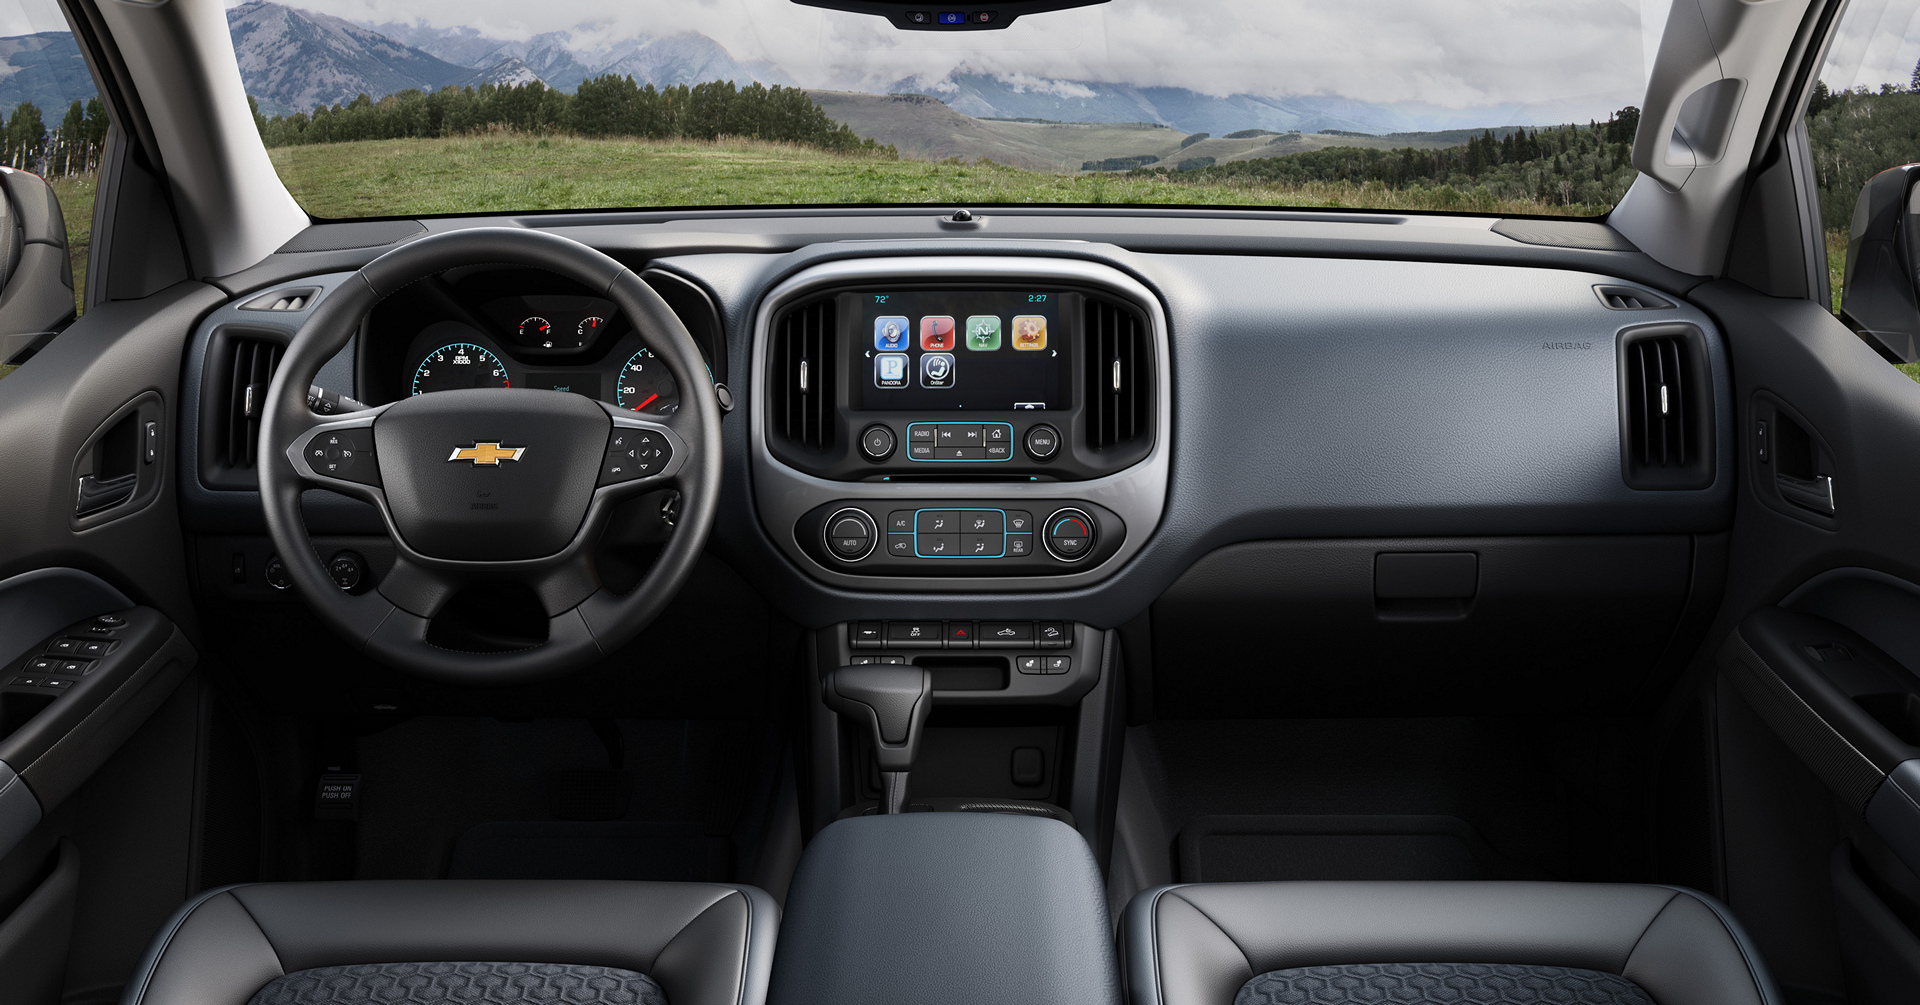 2016 Chevrolet Colorado © General Motors